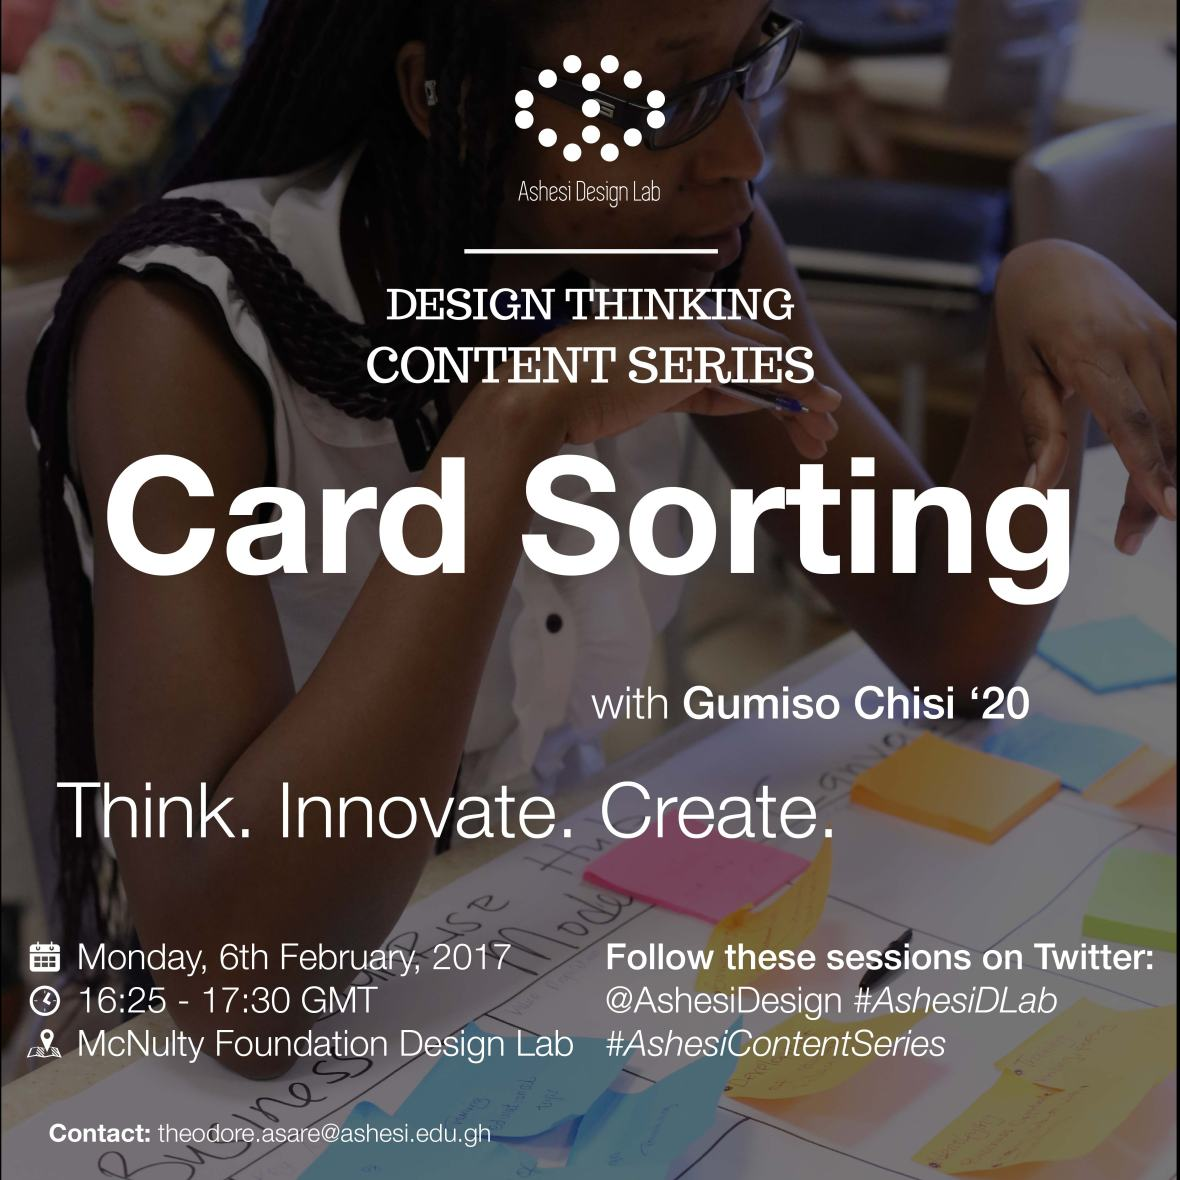 ashesi-dlab-content-series-card-sorting-01